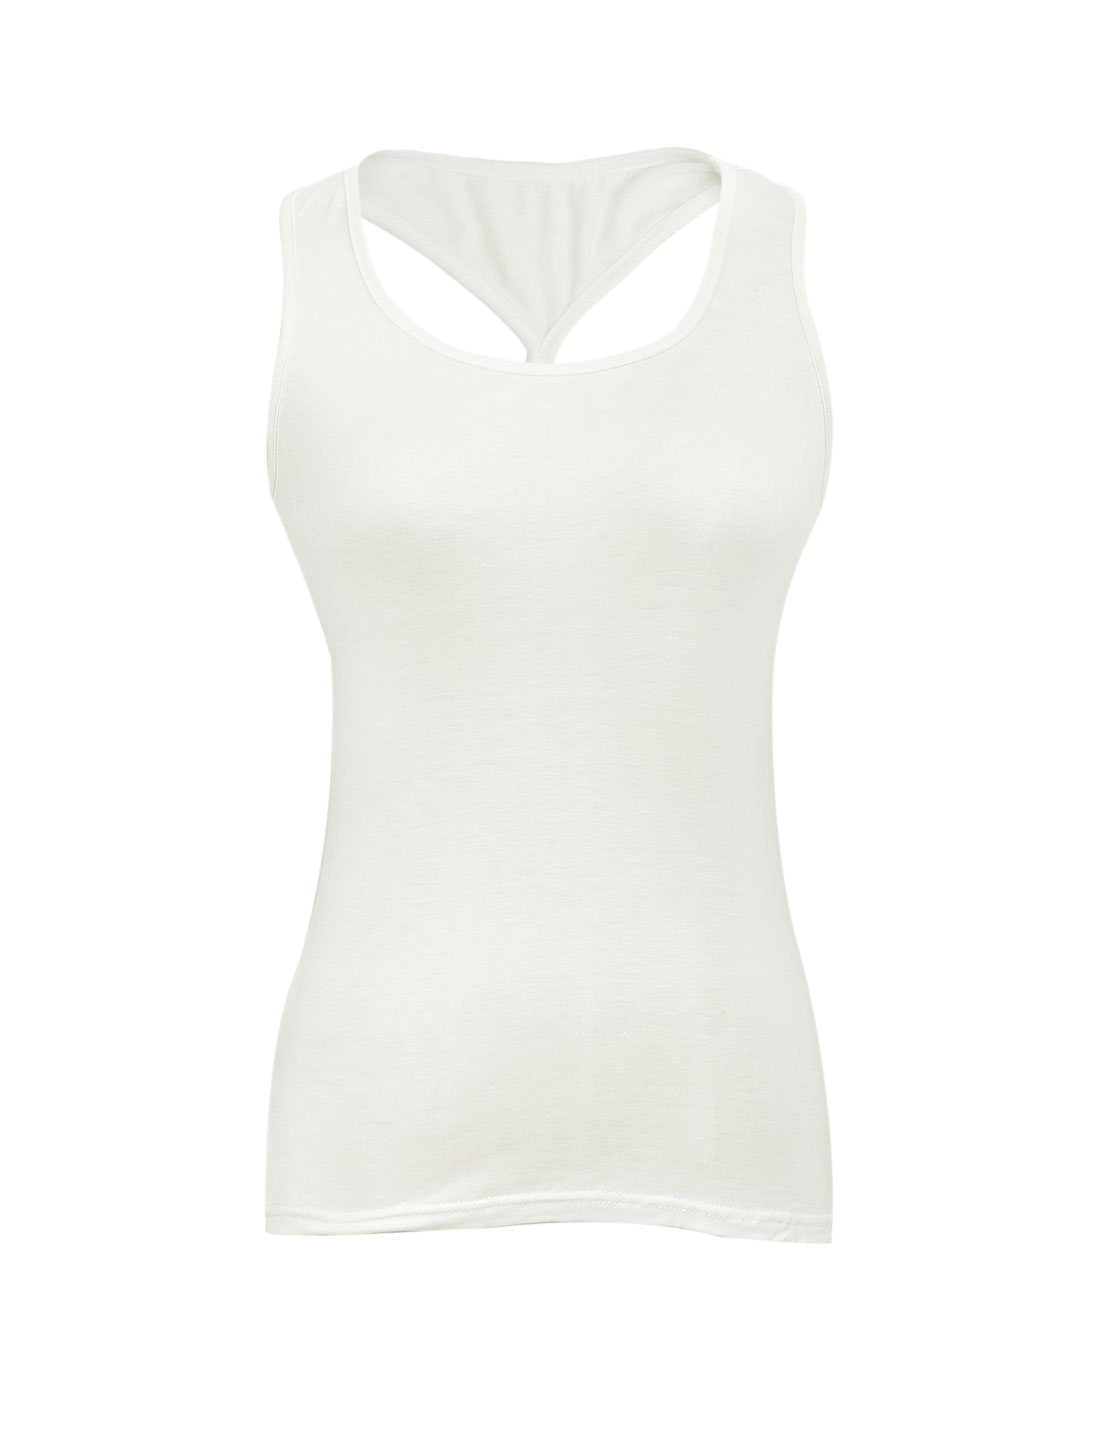 Ladies U Neck Cross Back Stretchy Slim Fit Tank Top White XS